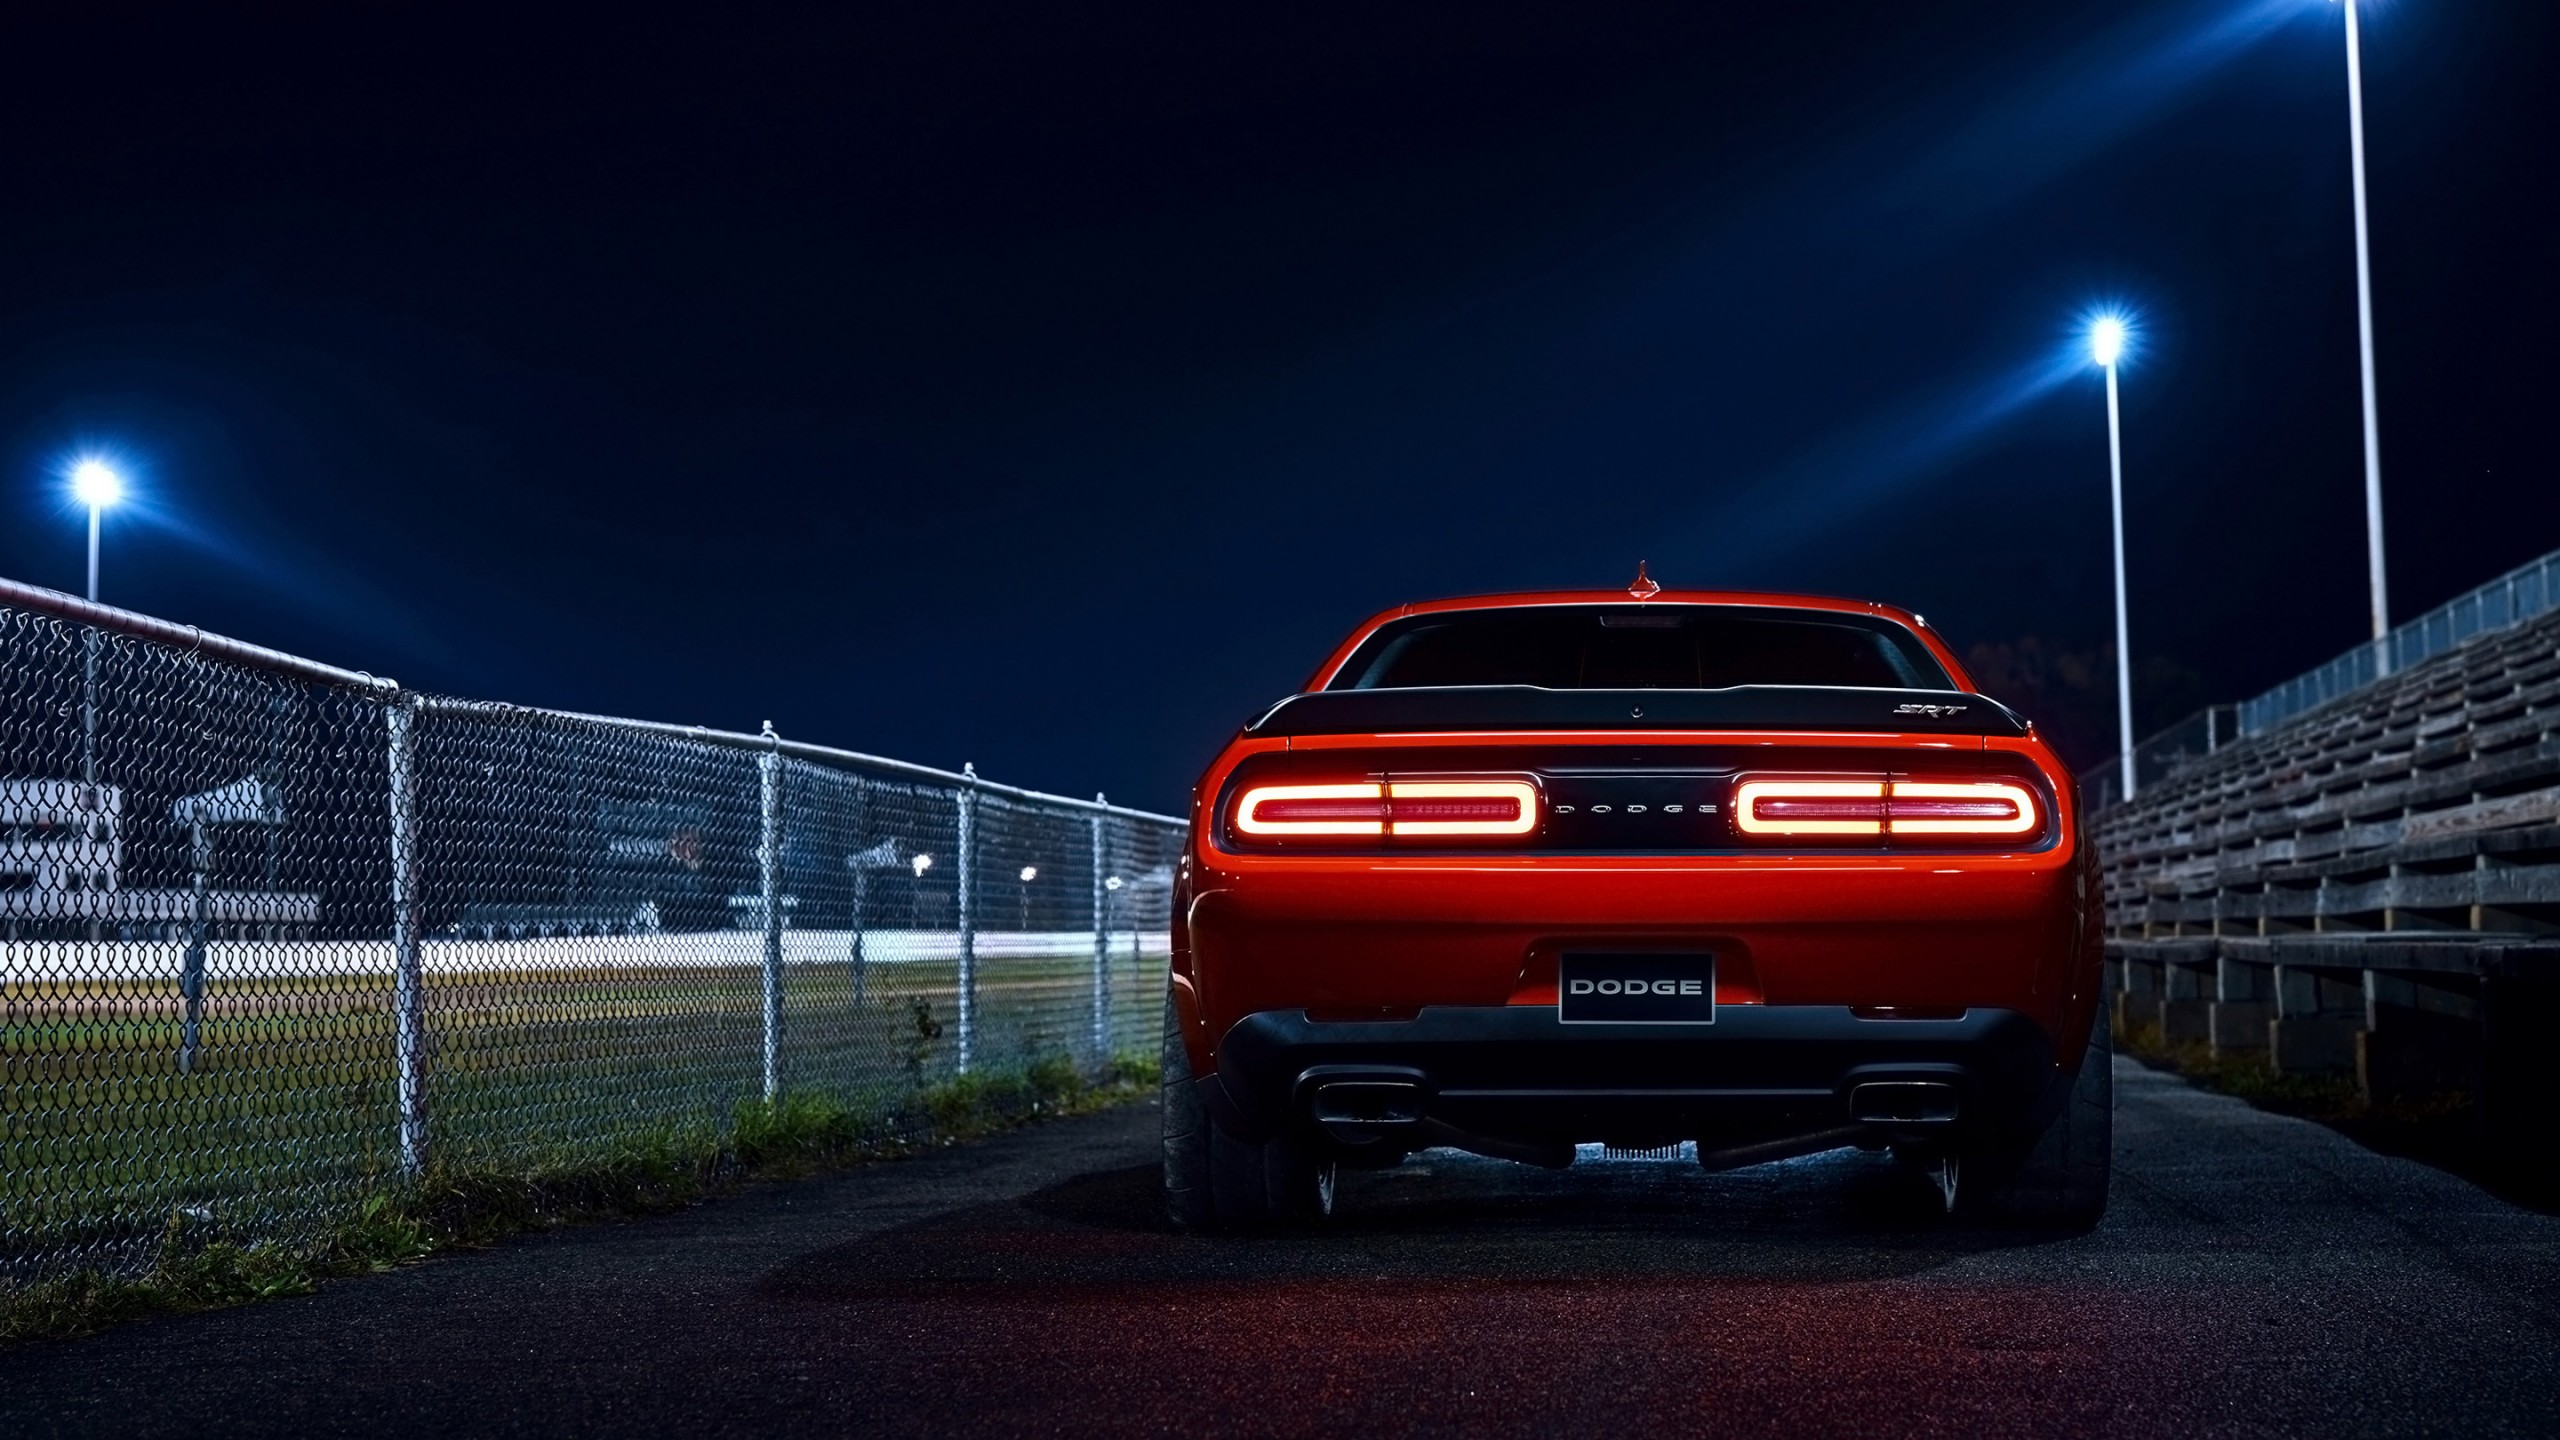 2018 Dodge Challenger SRT Demon 6 Wallpaper | HD Car ...